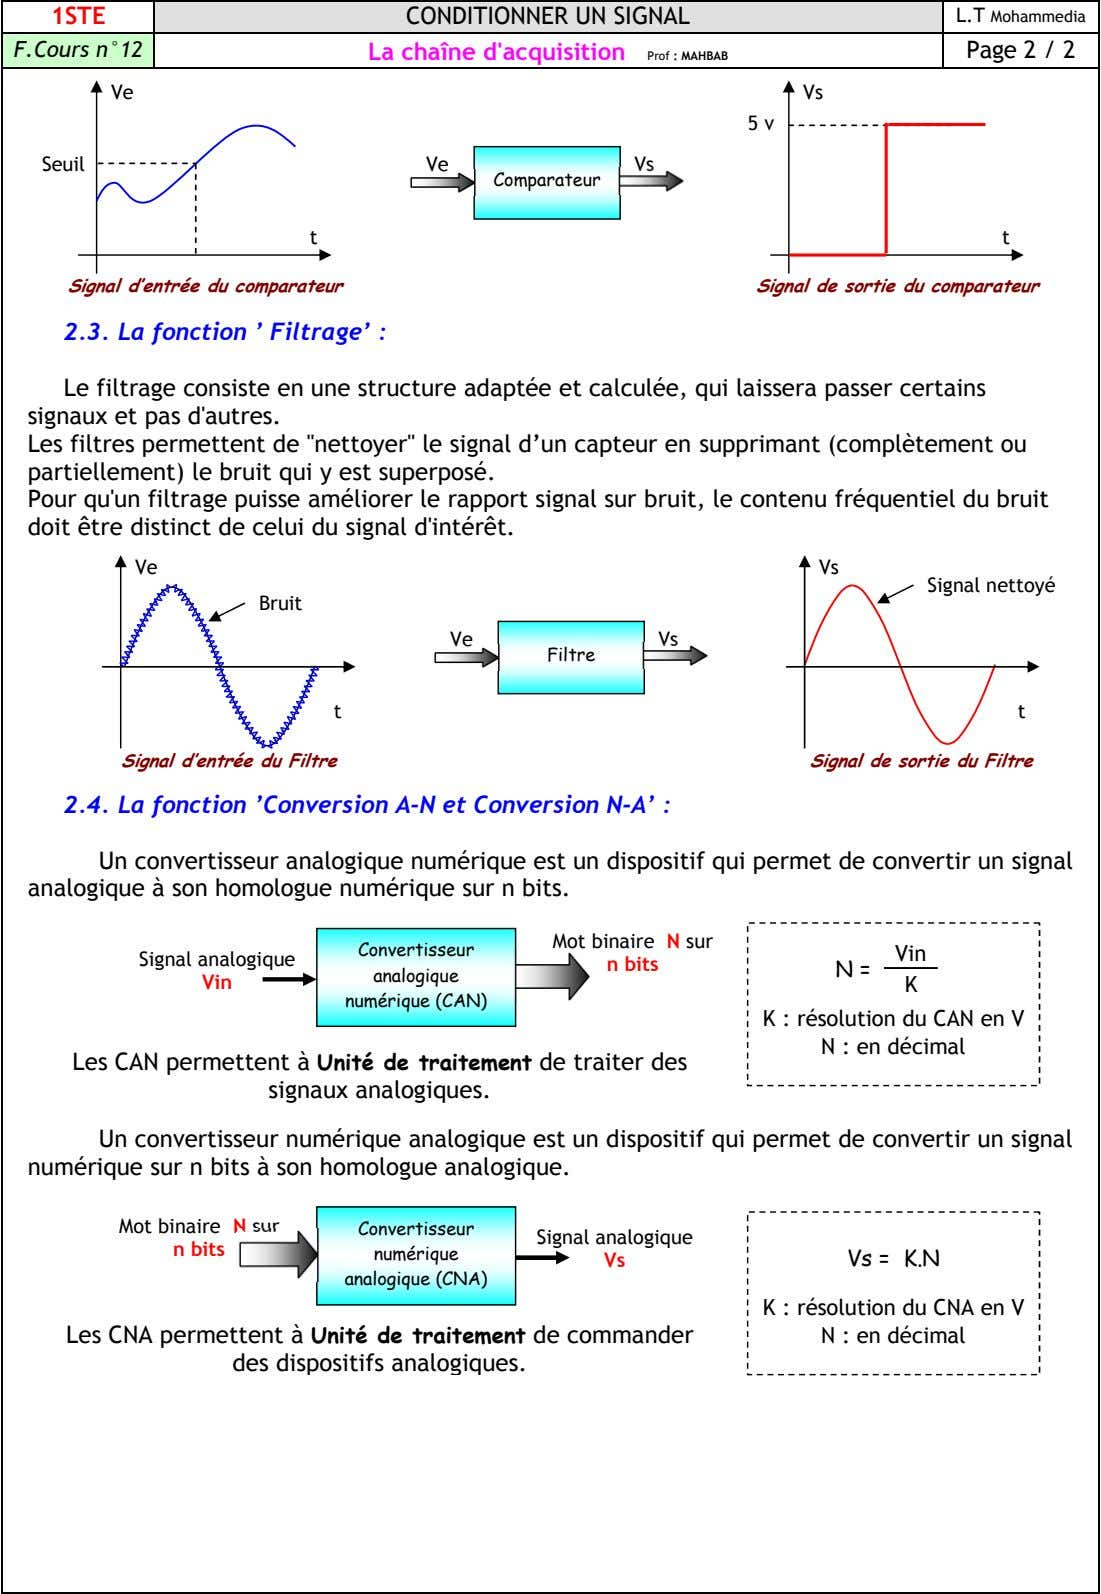 1STE CONDITIONNER UN SIGNAL L.T Mohammedia F.Cours n°12 La chaîne d'acquisition Page 2 / 2